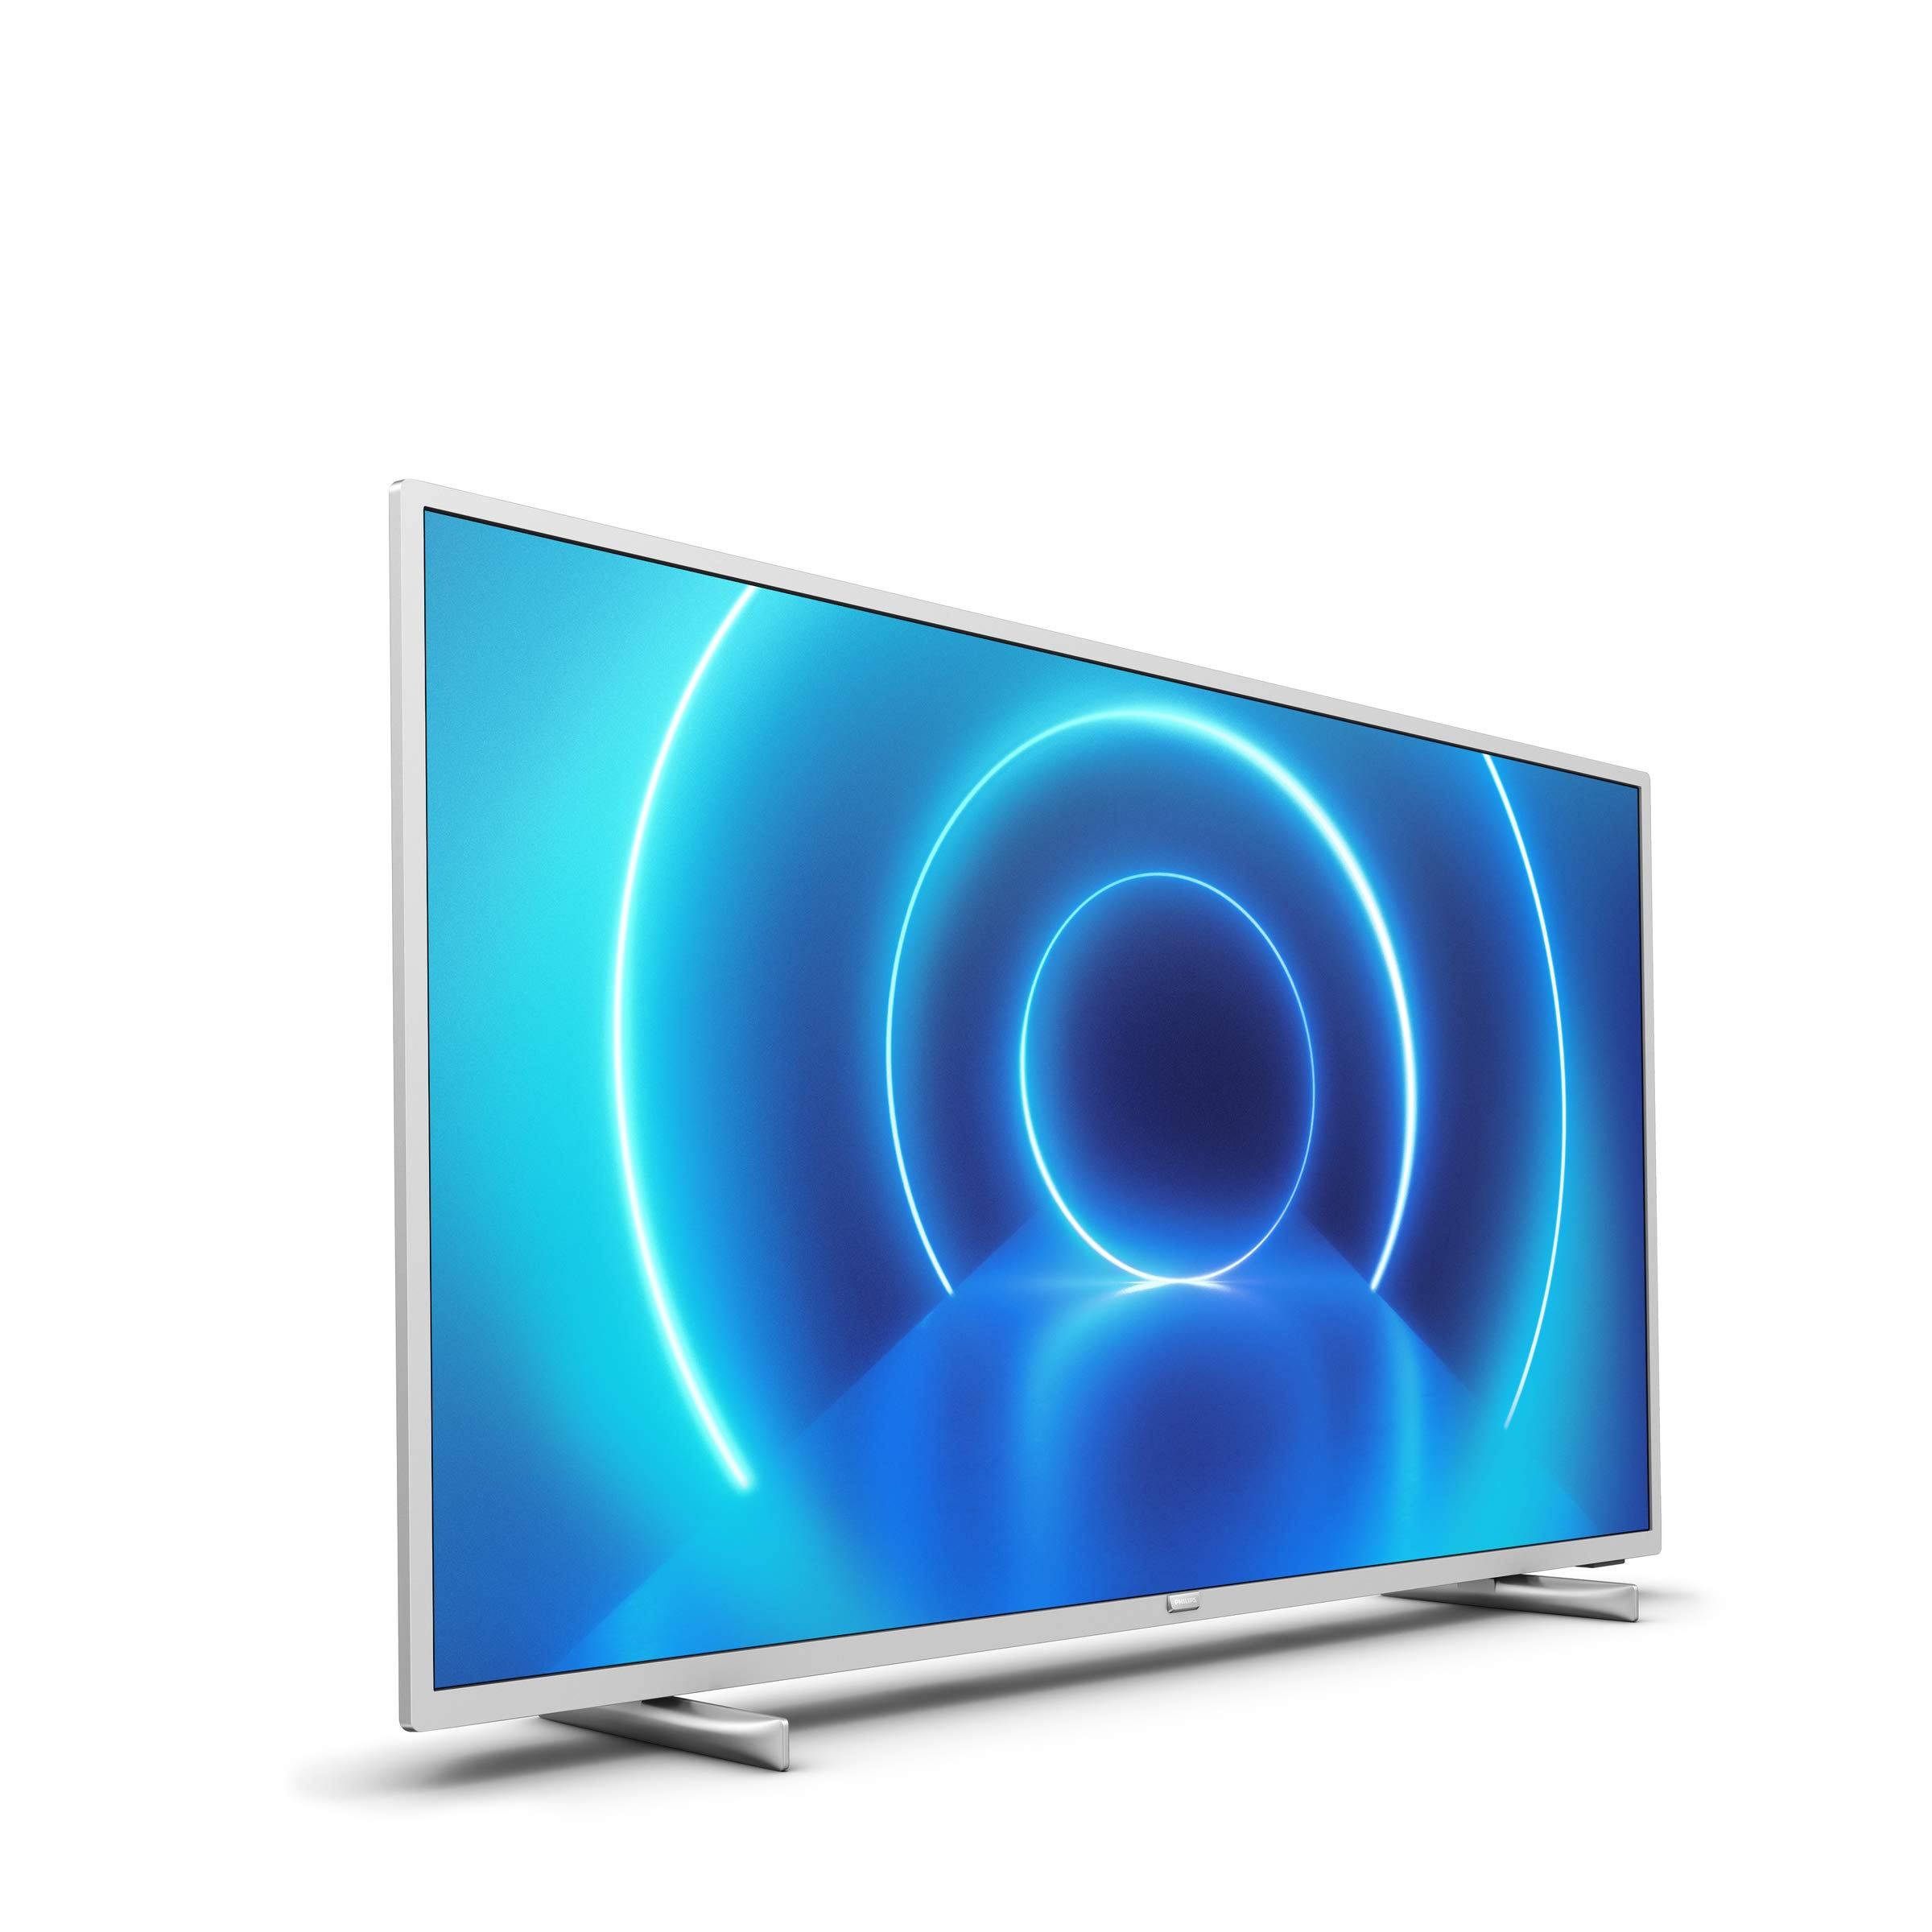 Televisor 4K UHD Philips 43PUS7555/12 de 108 cm (43 pulgadas) (4K UHD, P5 Perfect Picture Engine, Dolby Vision, Dolby Atmos, HDR 10+, Saphi Smart TV, HDMI, USB), Color plata (modelo de 2020/2021): Amazon.es: Electrónica